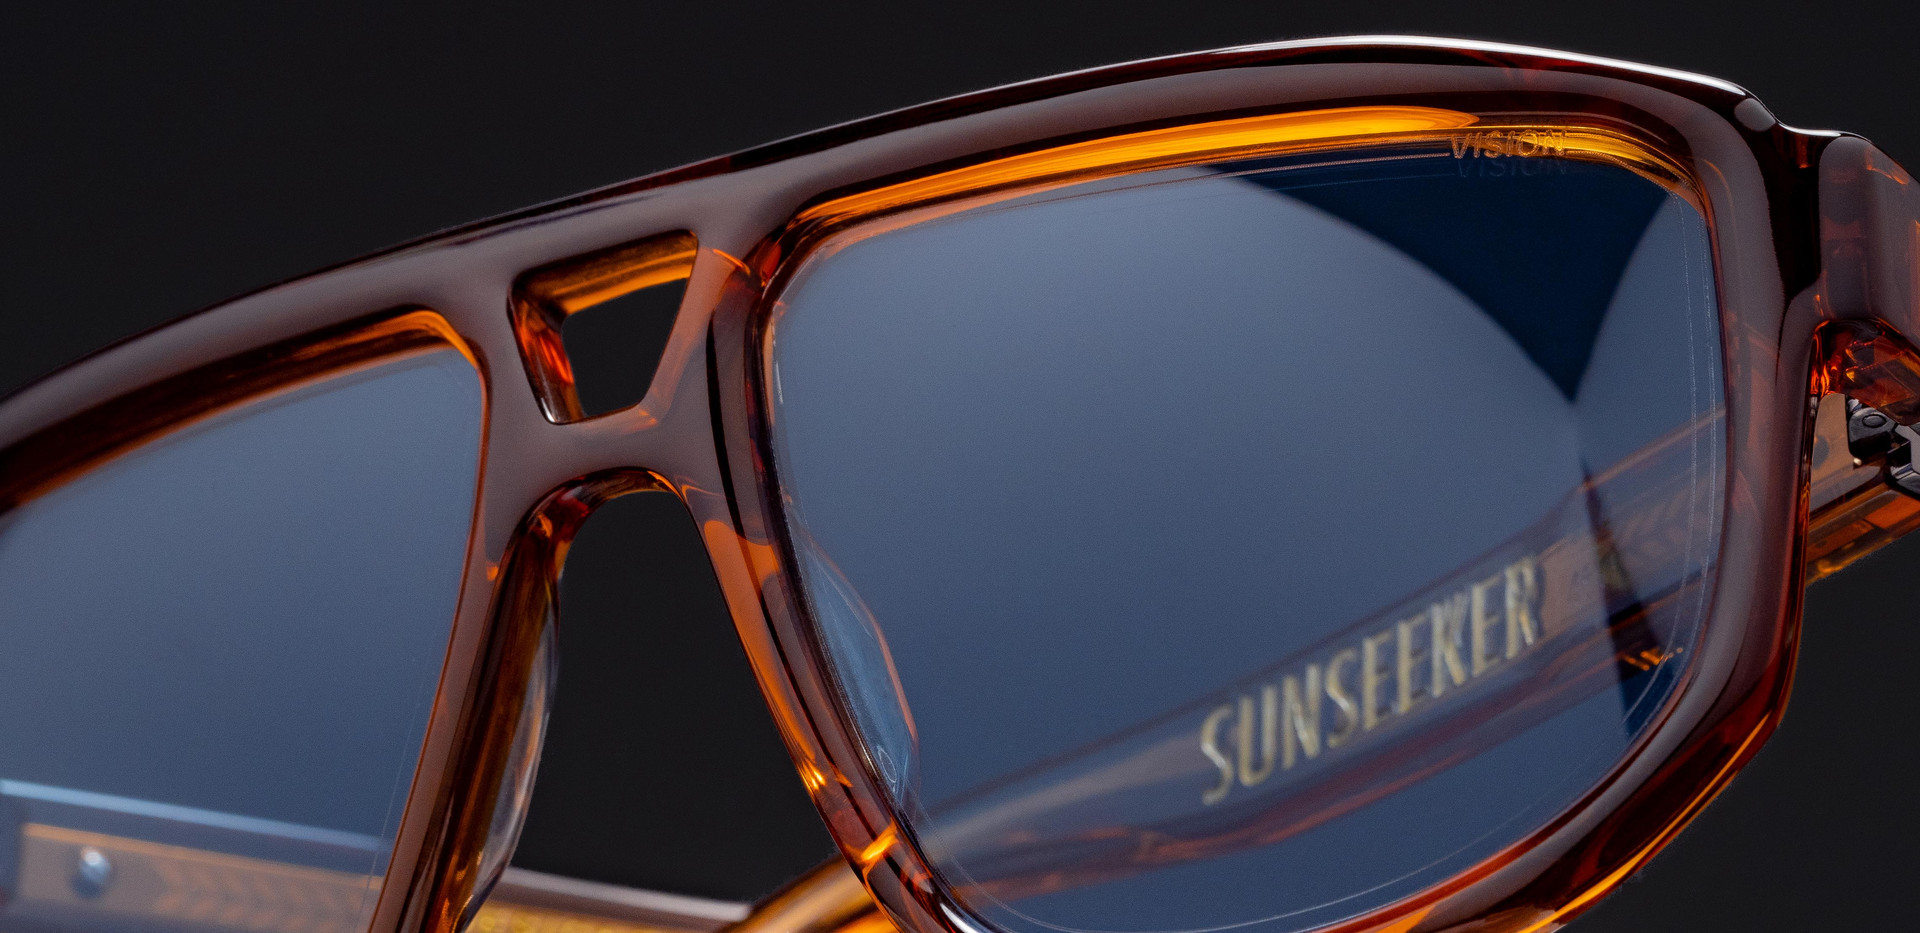 BRAVE Vision SUNSEEKER-whisky-tiled.jpg